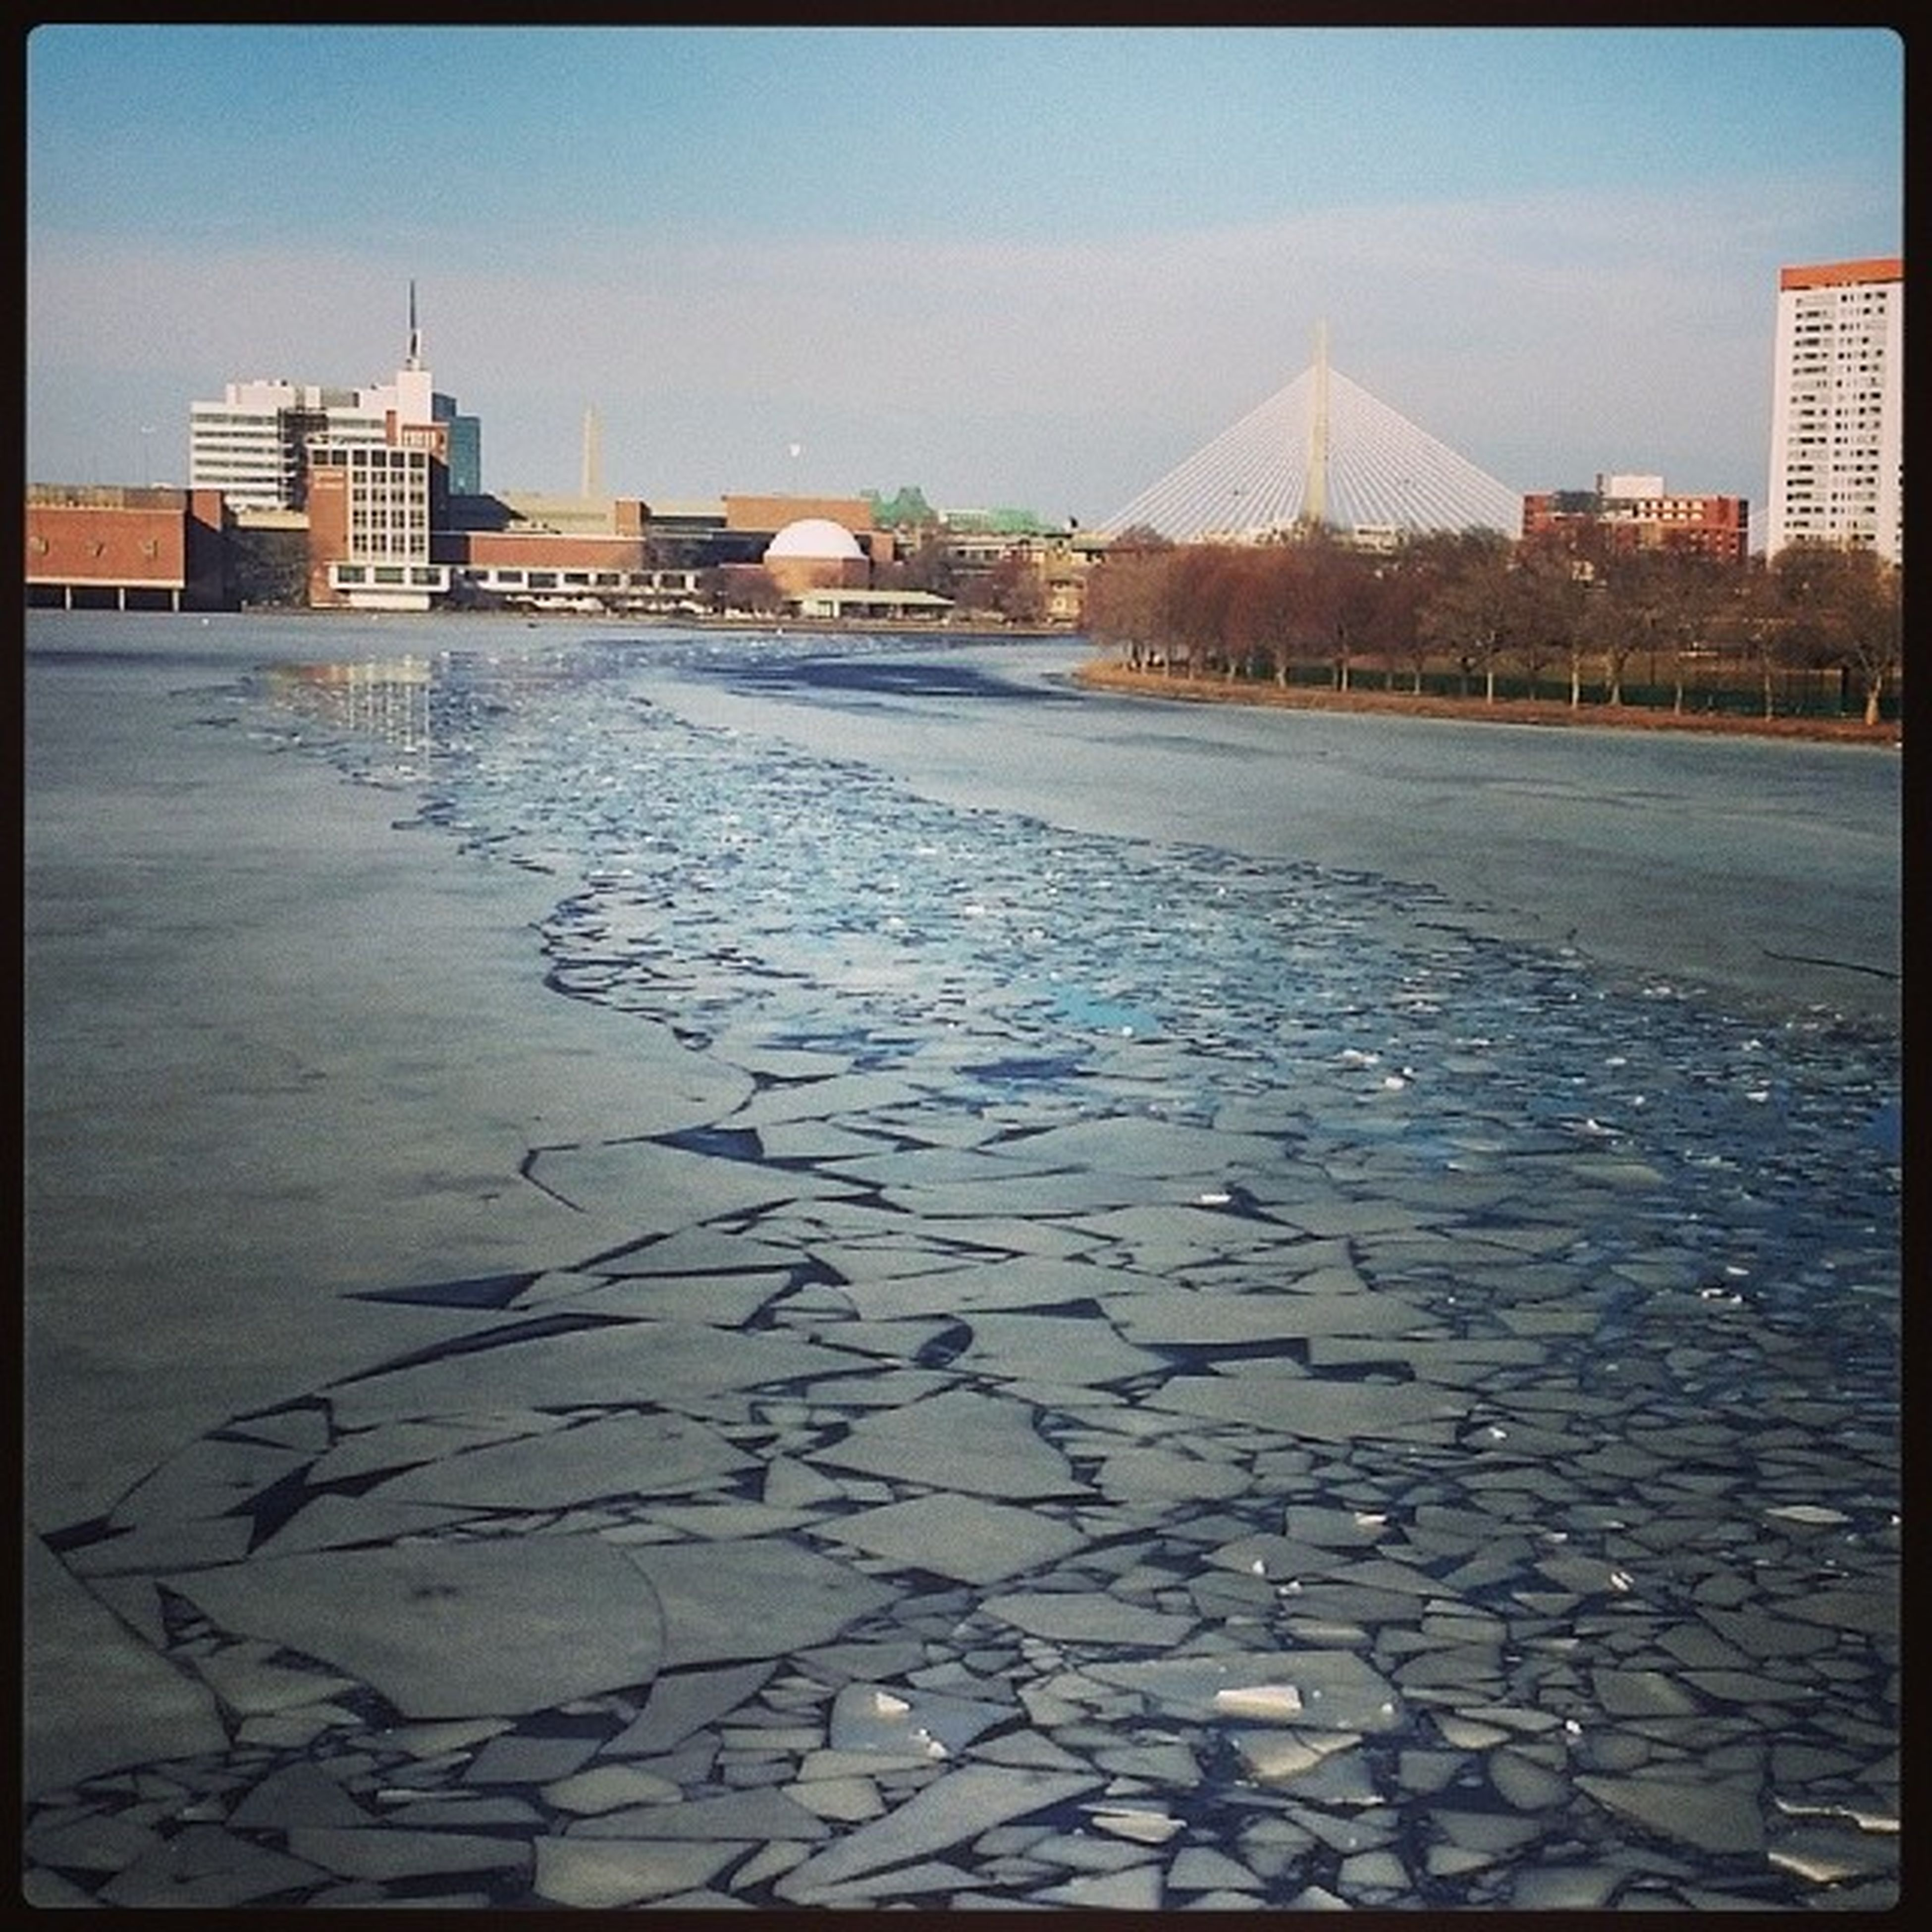 The icebreaker made its way down the Charles River today. Letmothernaturedoit Norush